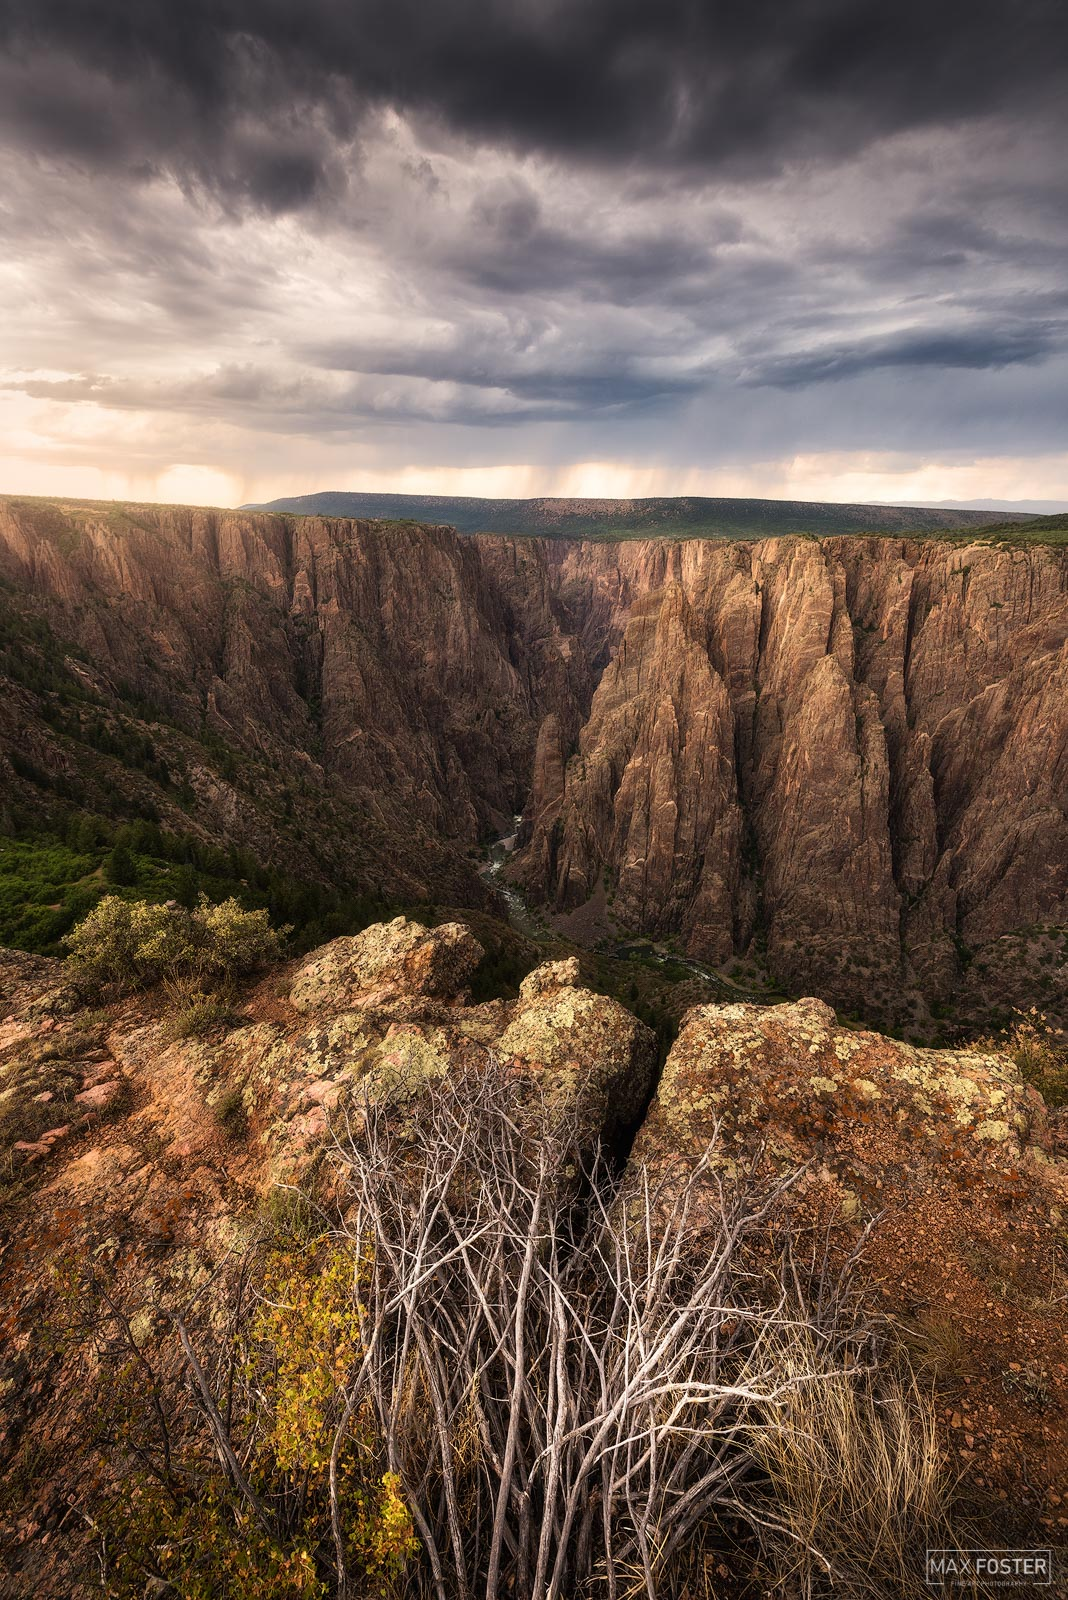 Black Canyon of the Gunnison National Park, Colorado, photo